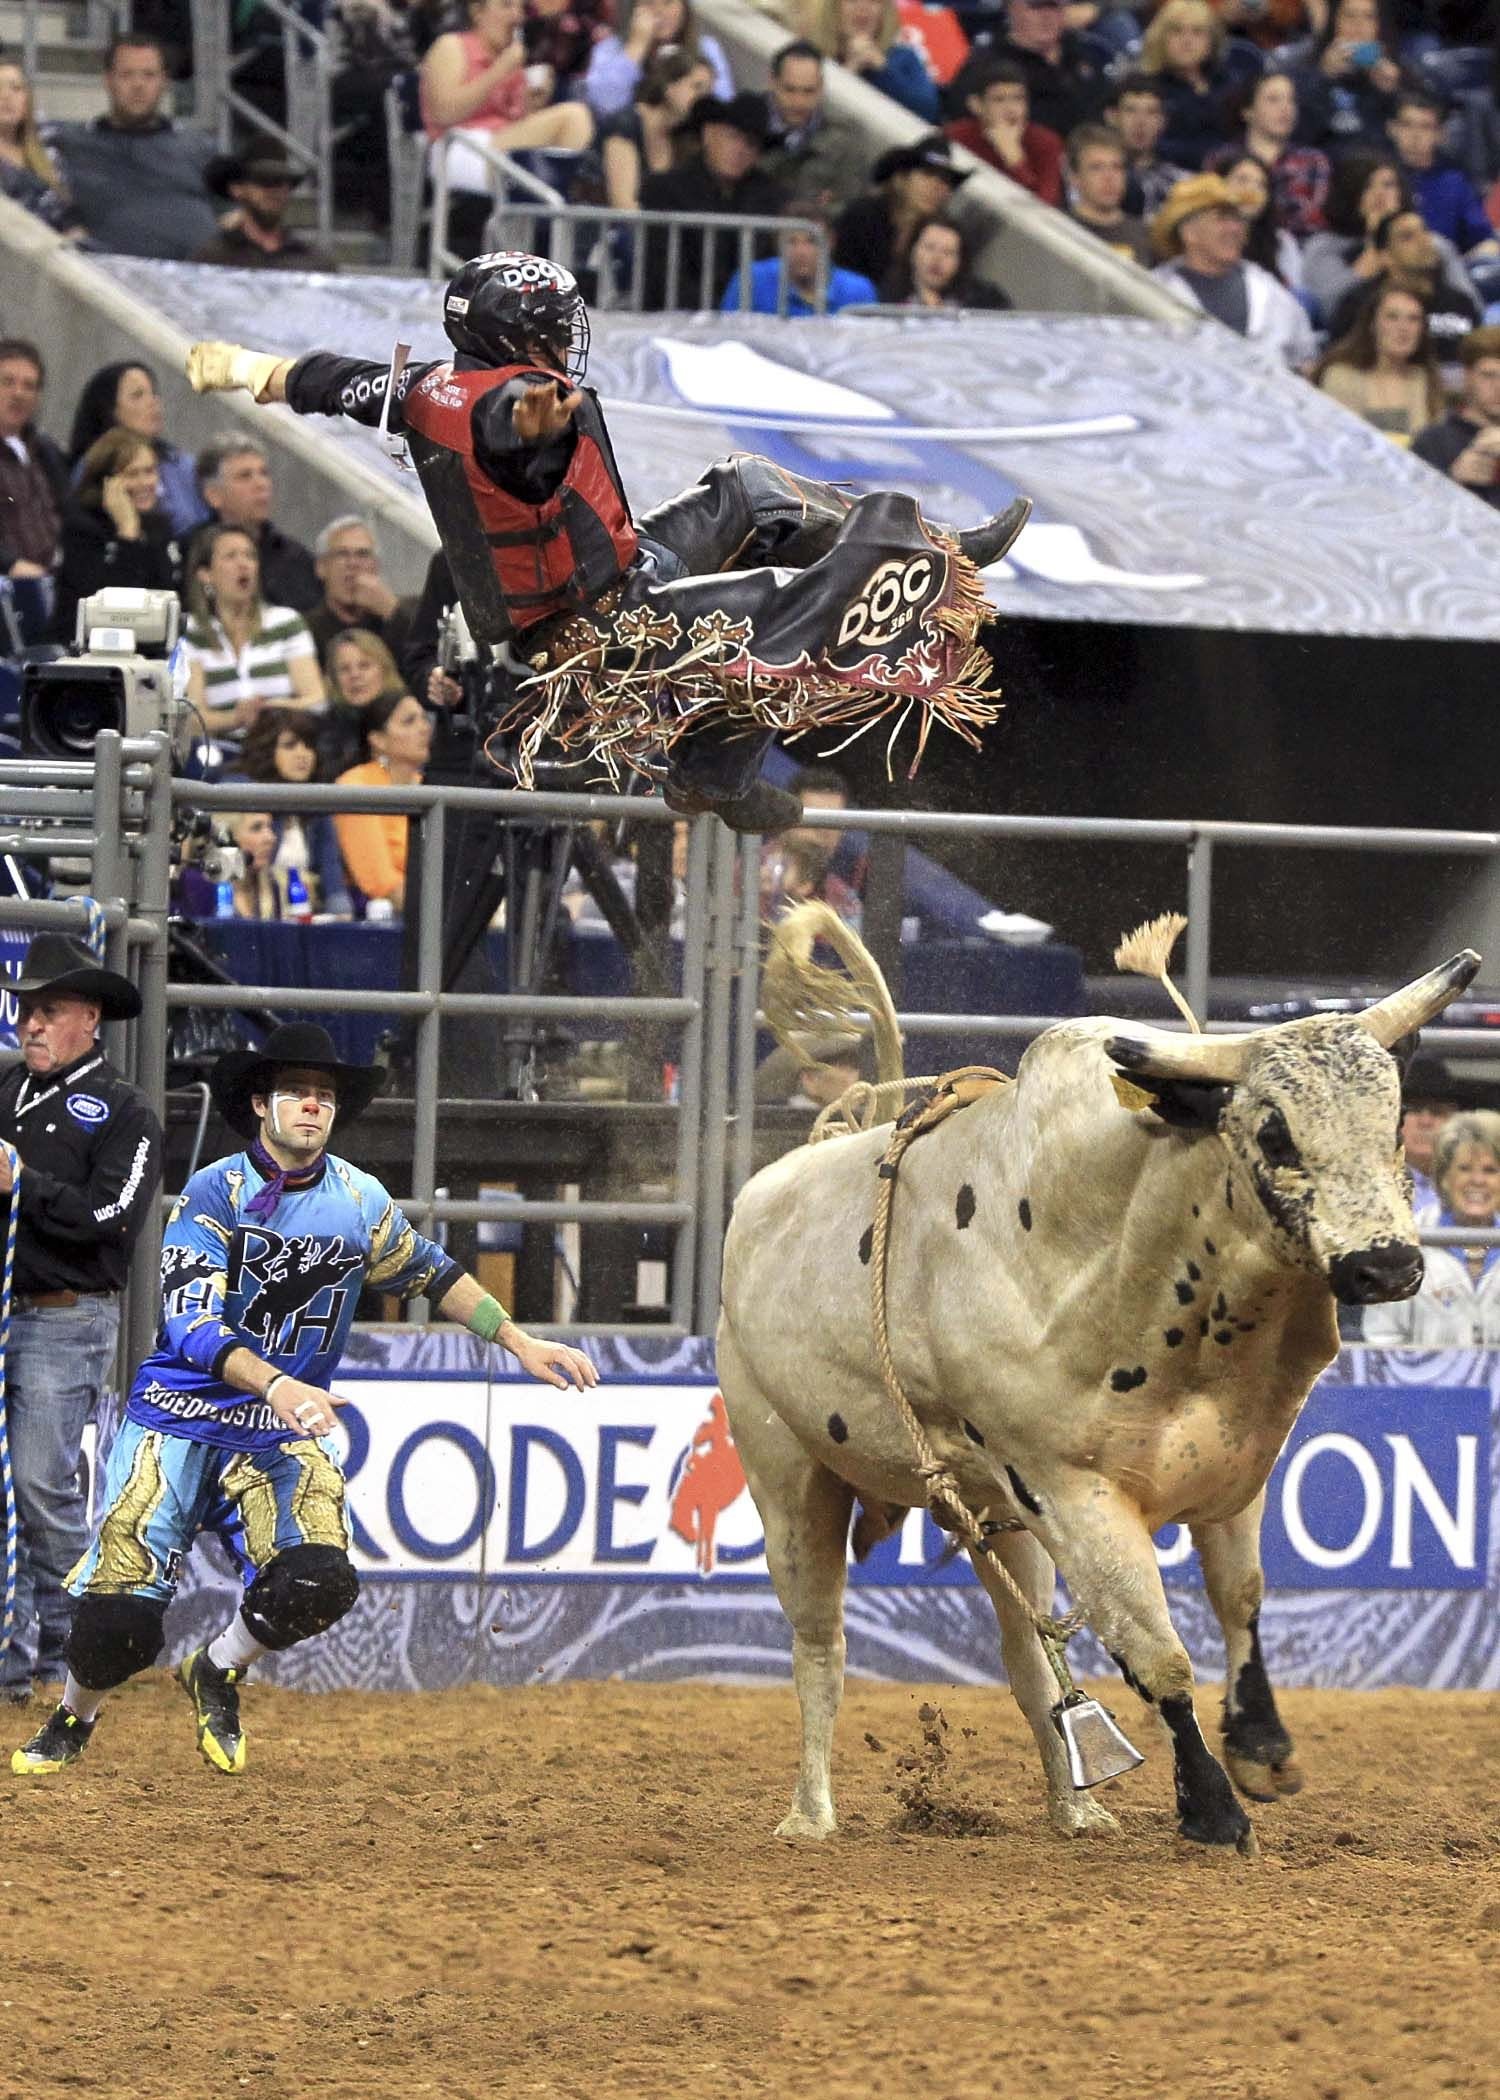 Fly 'em, cowboy! :)  Rodeo's and PBR!!! ( PROFESSIONAL BULL RIDING, not the beer)!